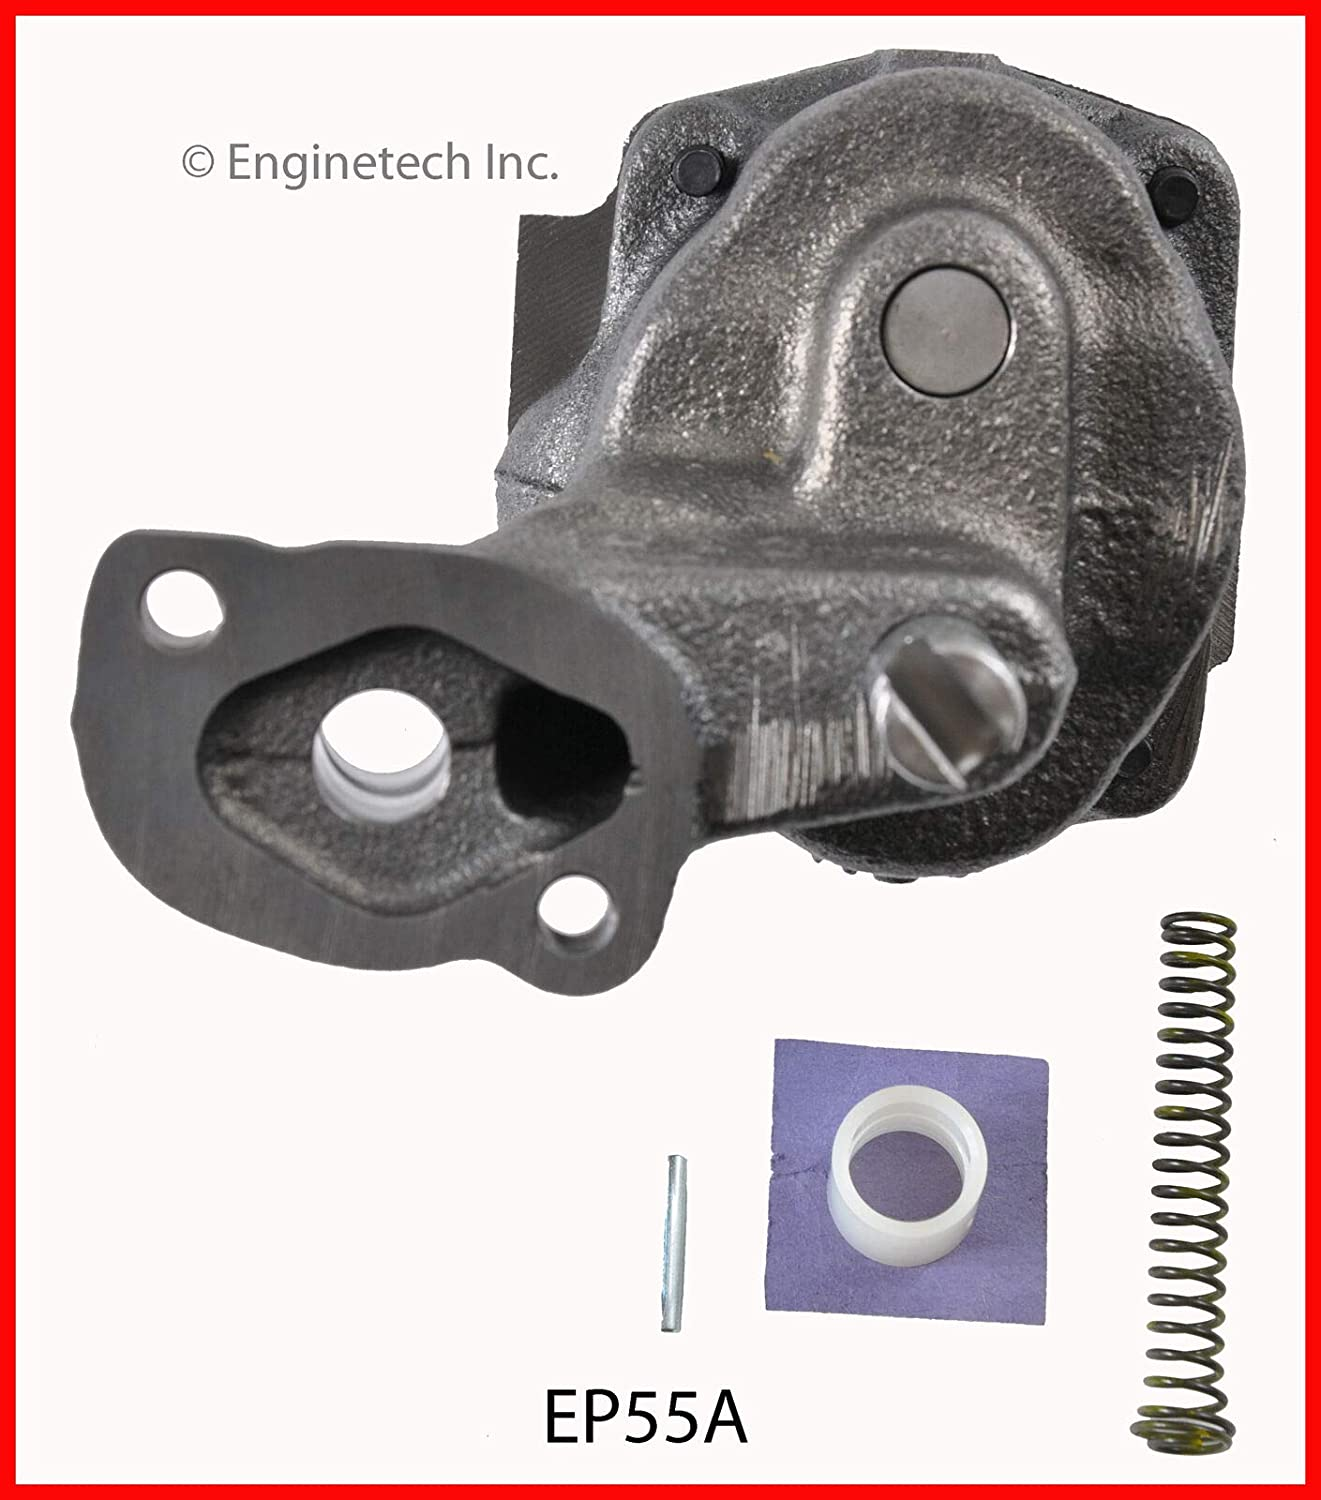 Enginetech EP55A Oil Pump GM 262 305 327 350 409 SPECIAL High PERF